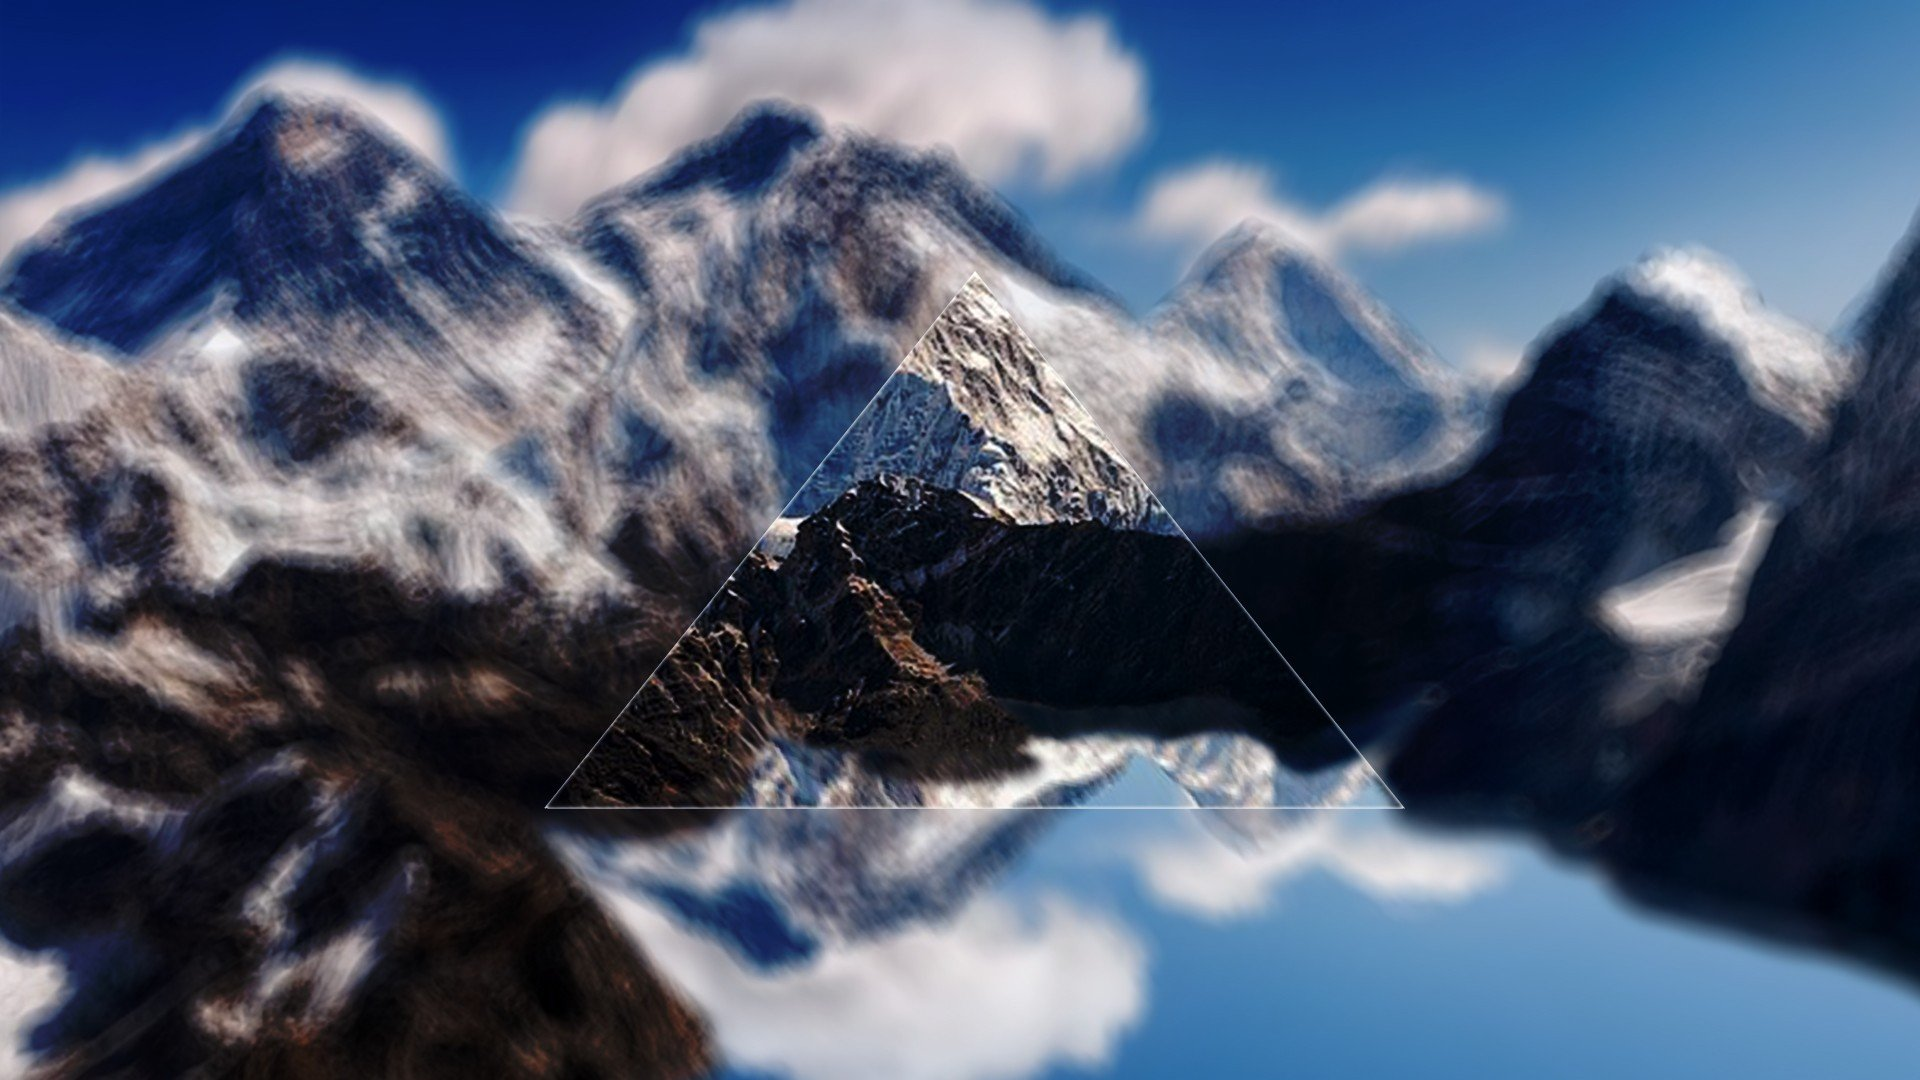 Download Wallpaper Mountain Triangle - 473325-landscape-digital_art-triangle-Mount_Everest-Himalayas-mountains  Best Photo Reference_376542.jpg